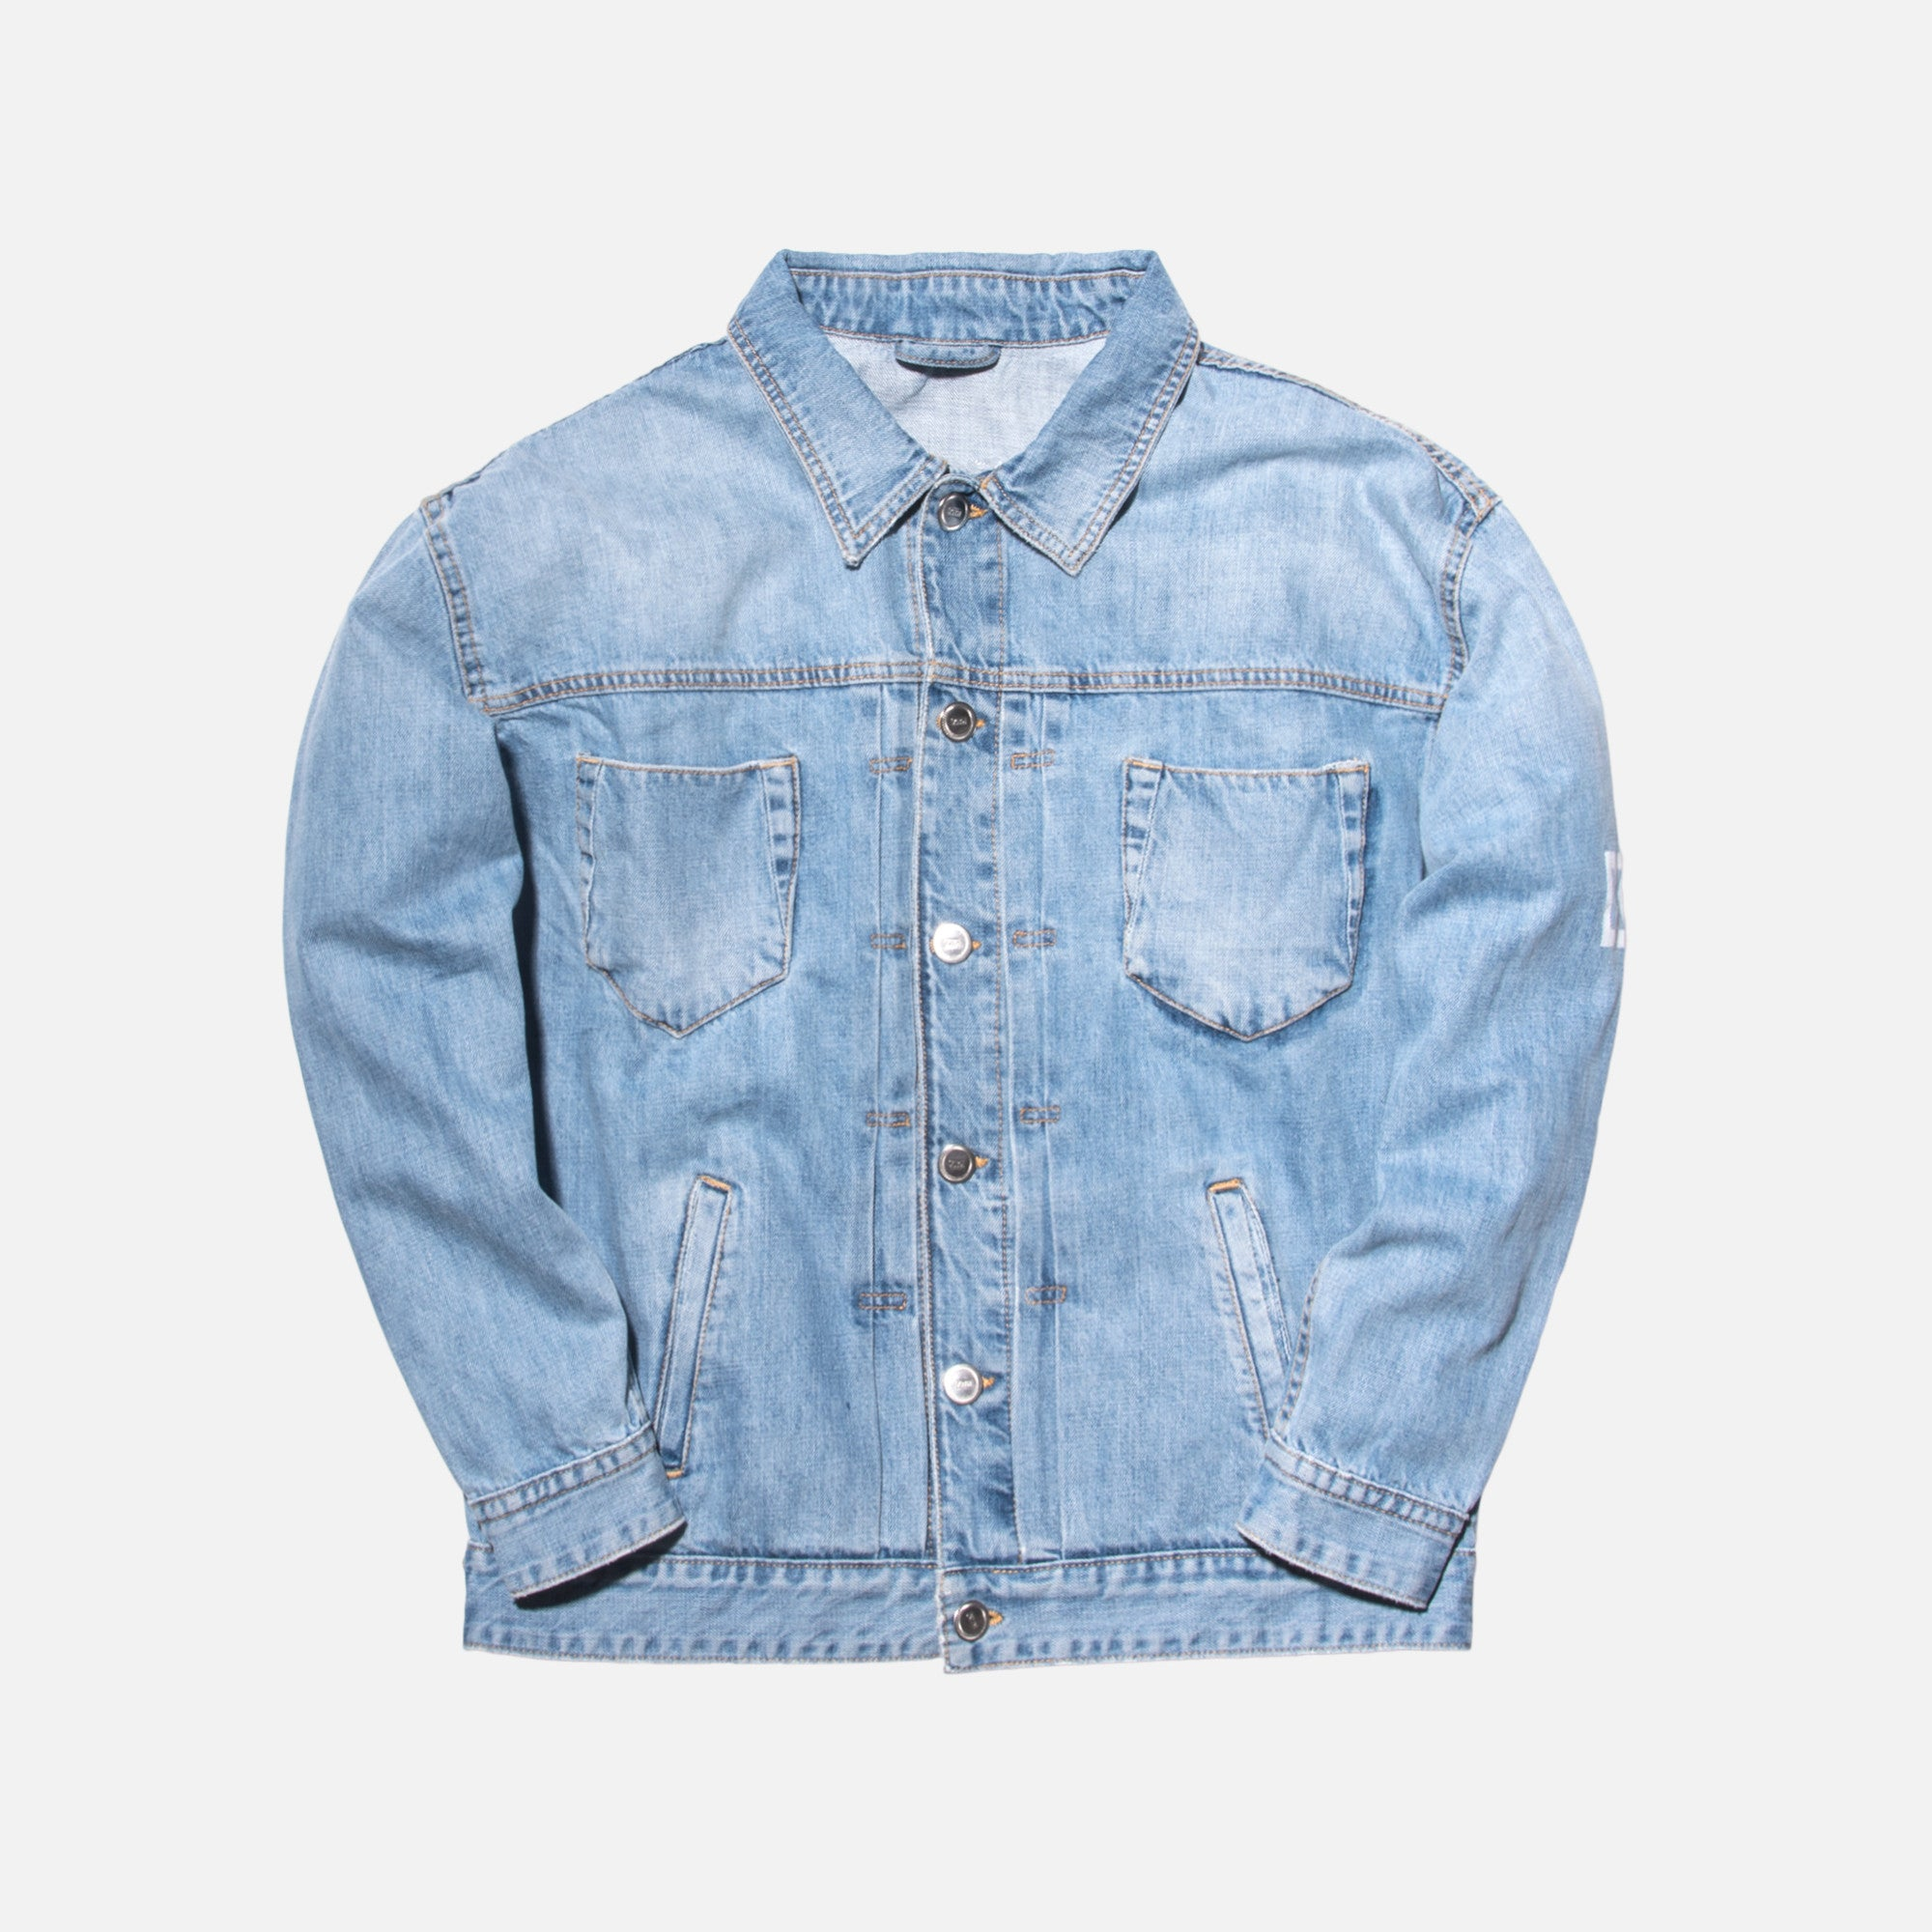 Kith Laight Denim Jacket - Vintage Wash